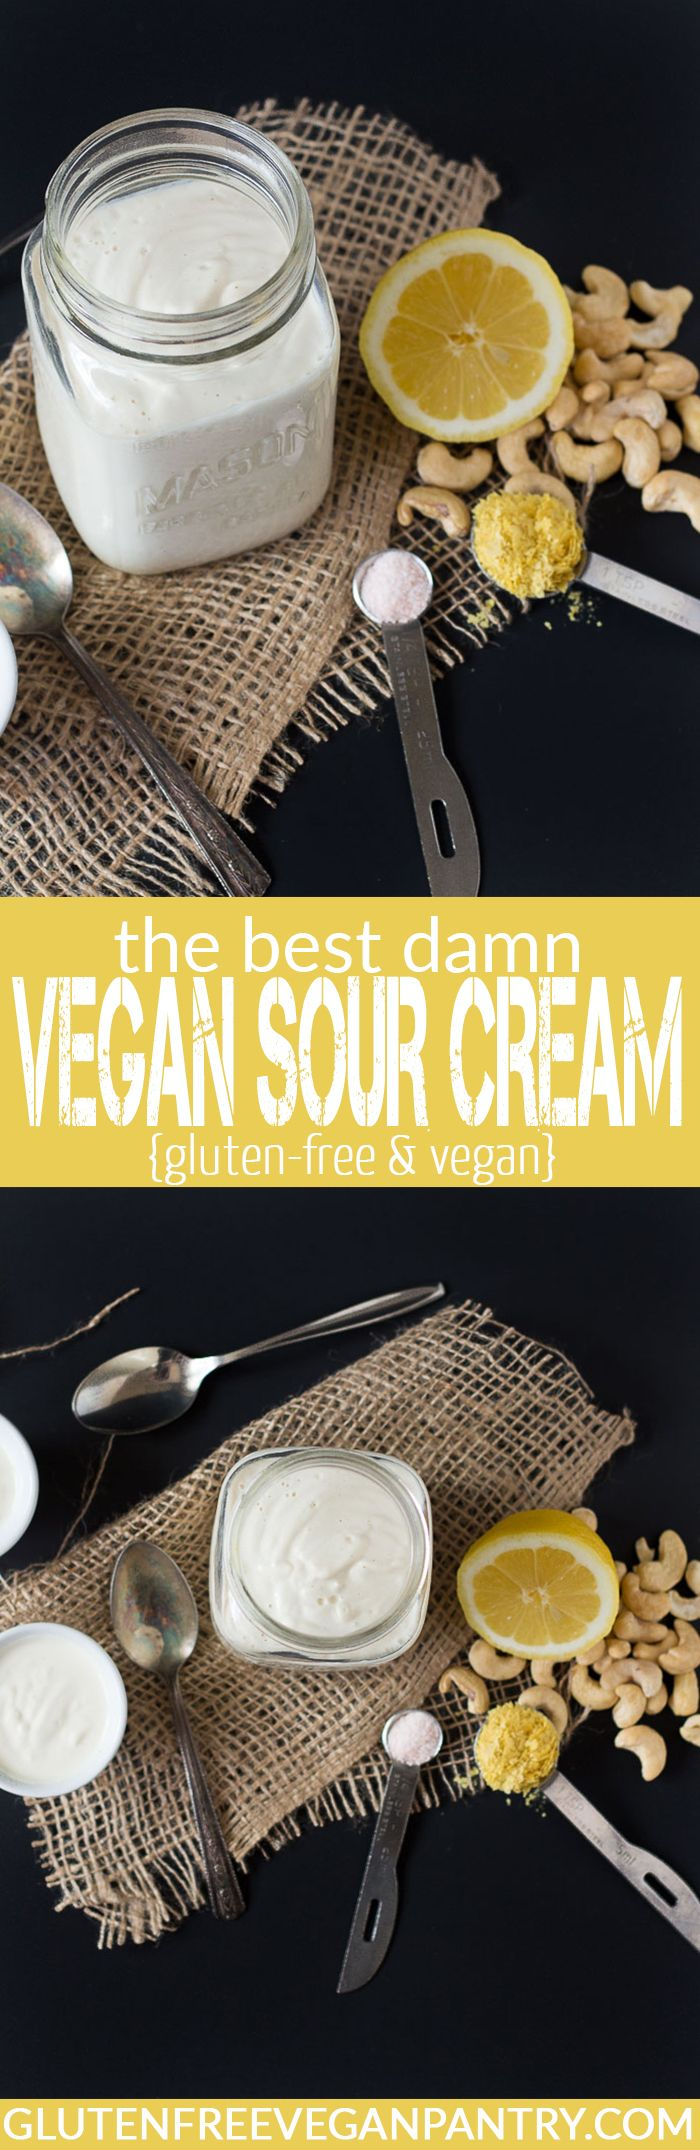 The best damn vegan sour cream #sourcream